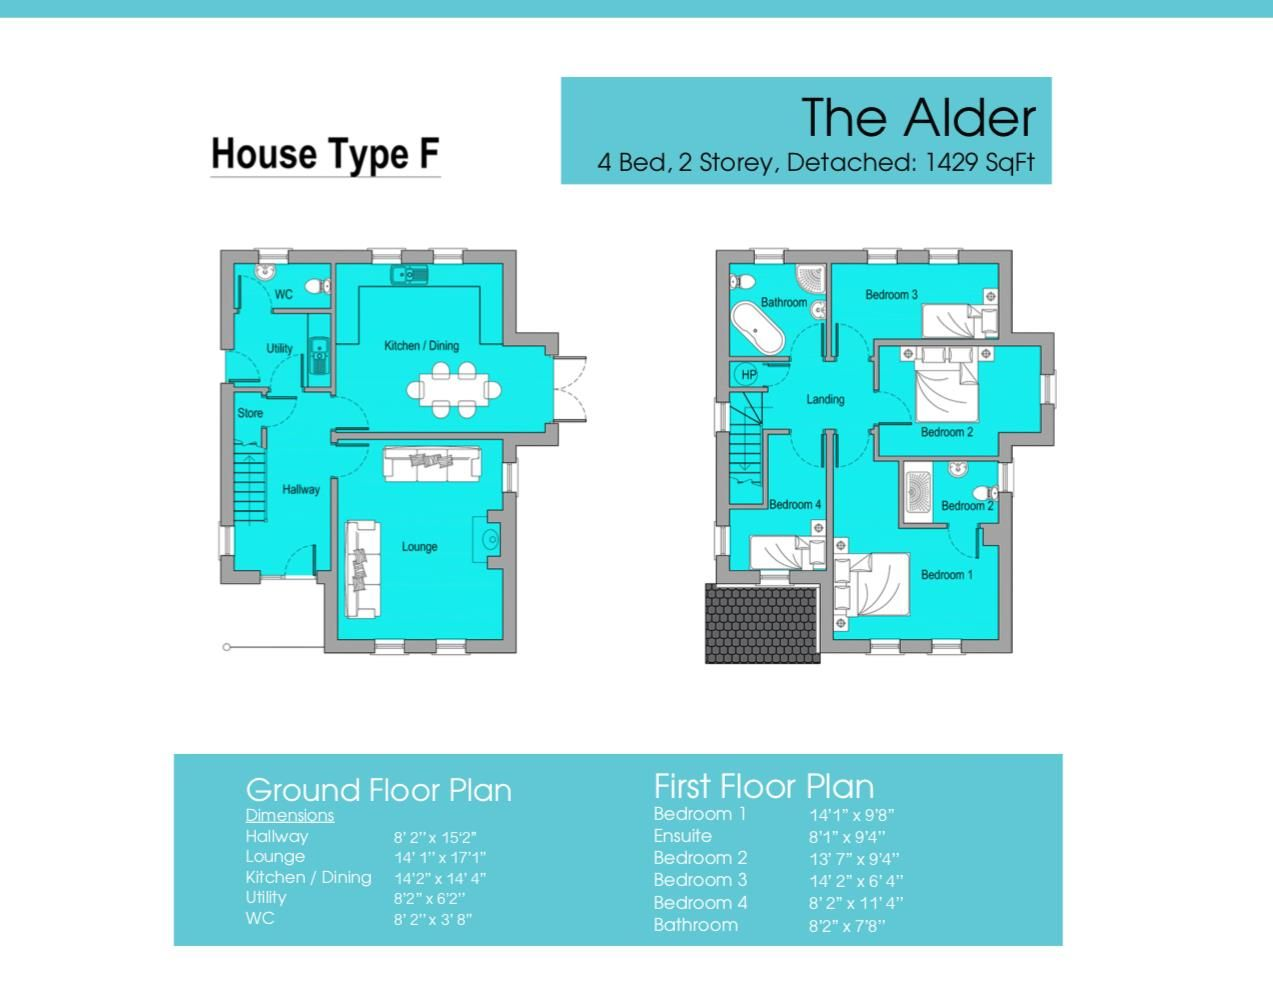 Property photo 1 of 2. House Type F - The Alder.Png